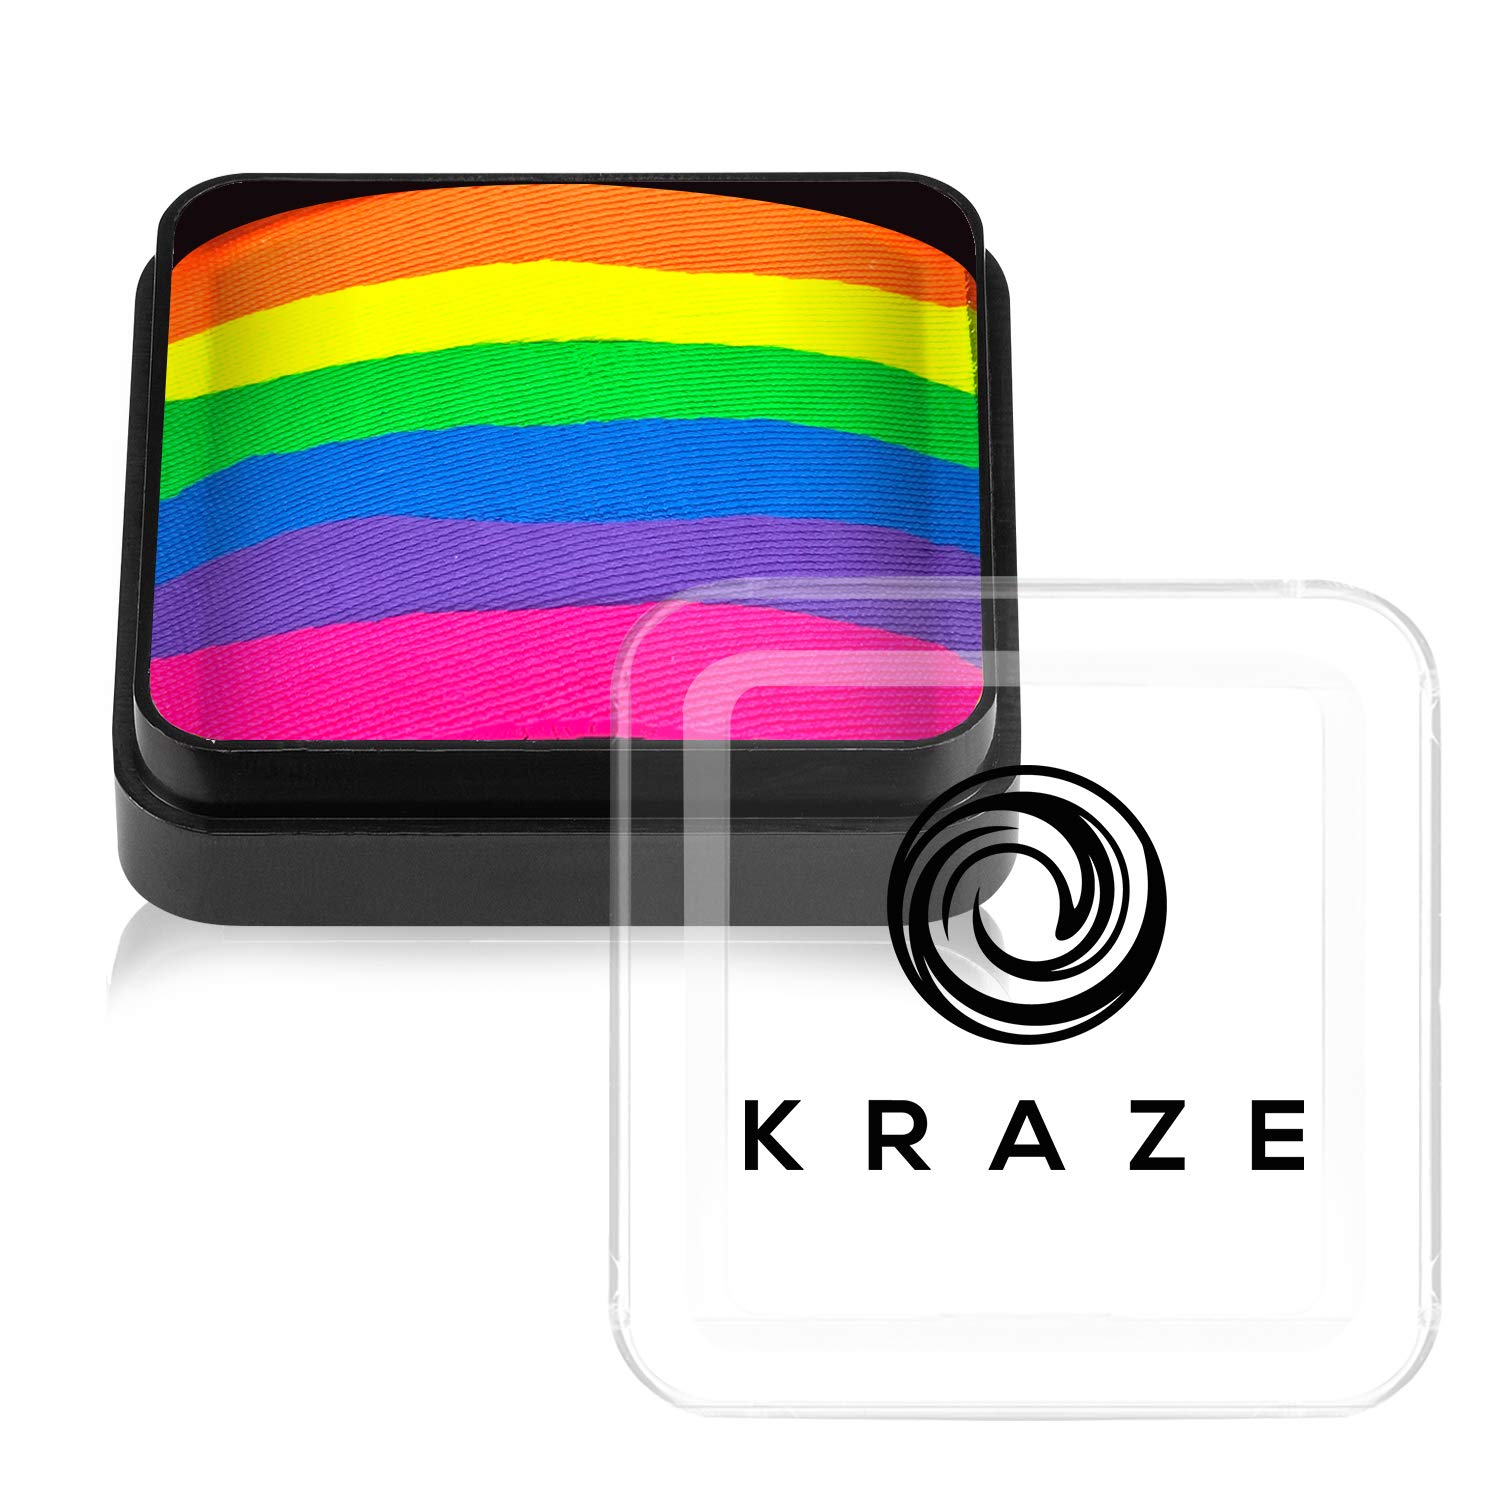 Kraze FX Dome Cake - Neon Rave (25 gm), Professional Face and Body Painting Split Cake, Hypoallergenic, Safe & Non-Toxic, Child Friendly, Ideal for Fairs, Carnivals, Party & Halloween